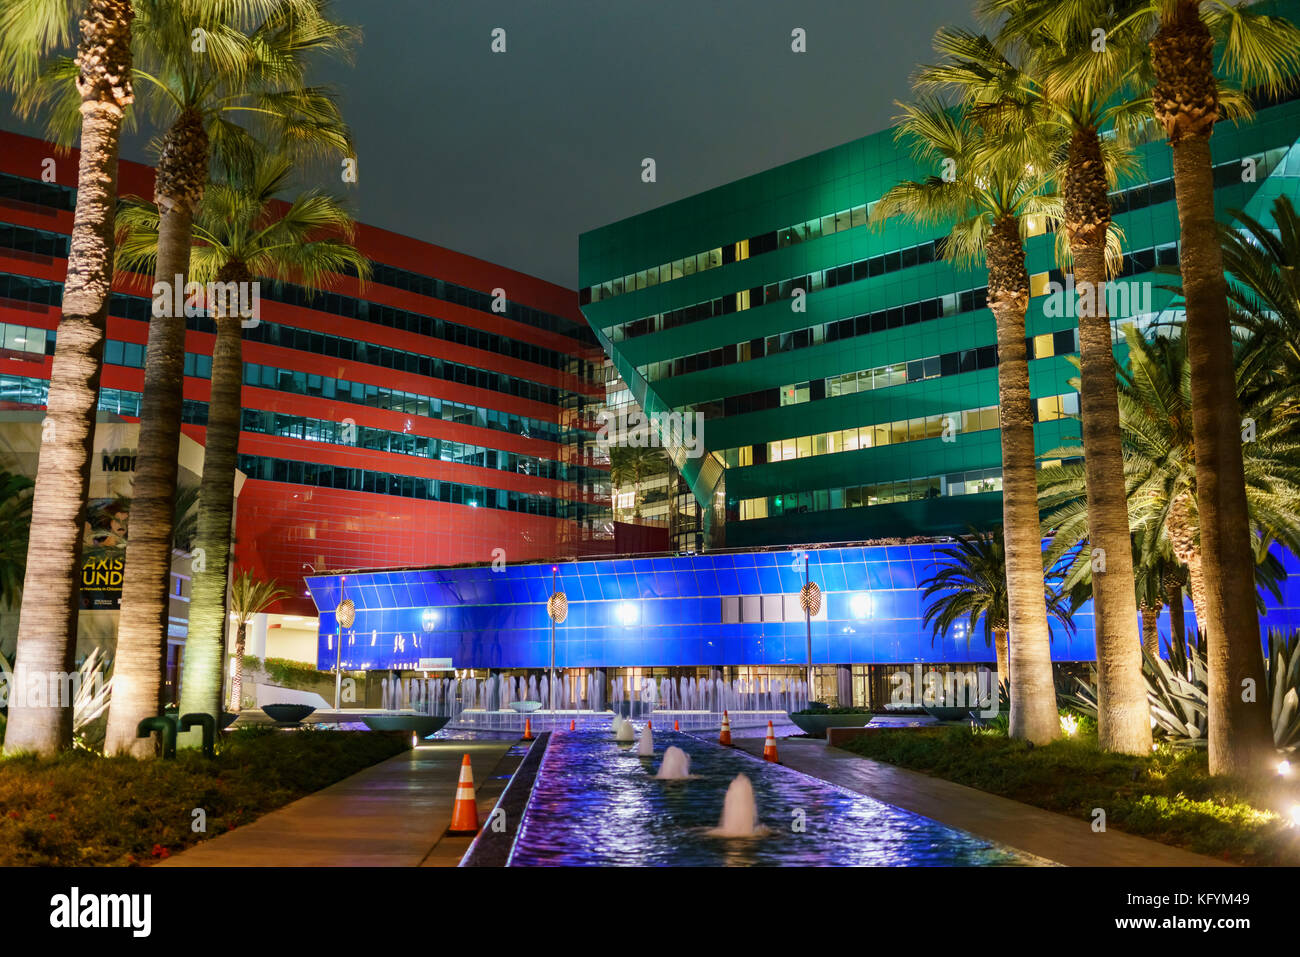 Los Angeles, OCT 31: Night view of the special Pacific Design Center on OCT 31, 2017 at West Hollywood, Los Angeles, Stock Photo